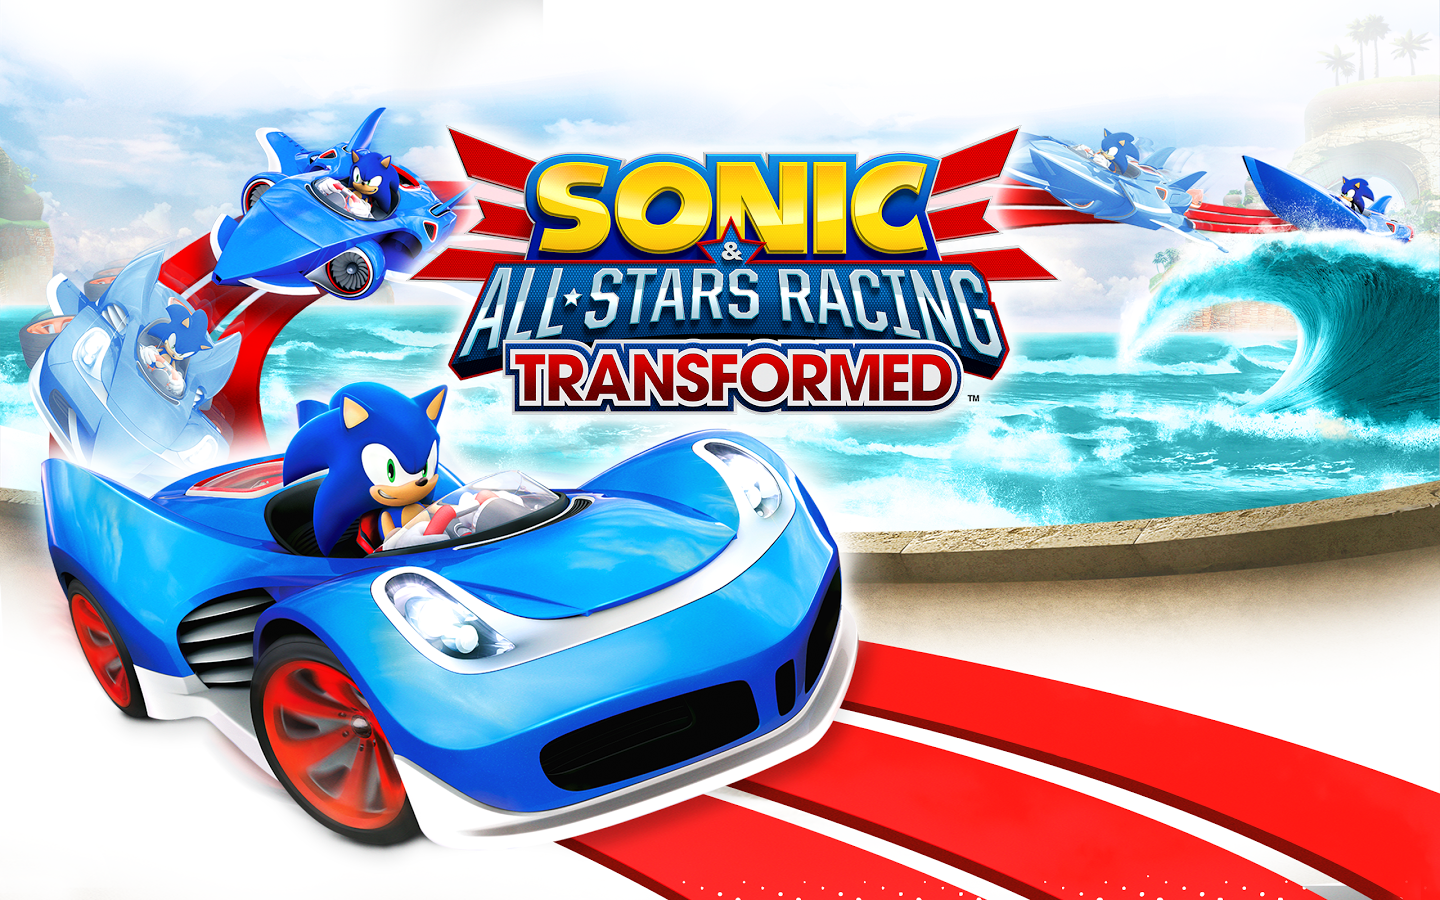 Sonic & All-Stars Racing Transformed full game free pc, d ...